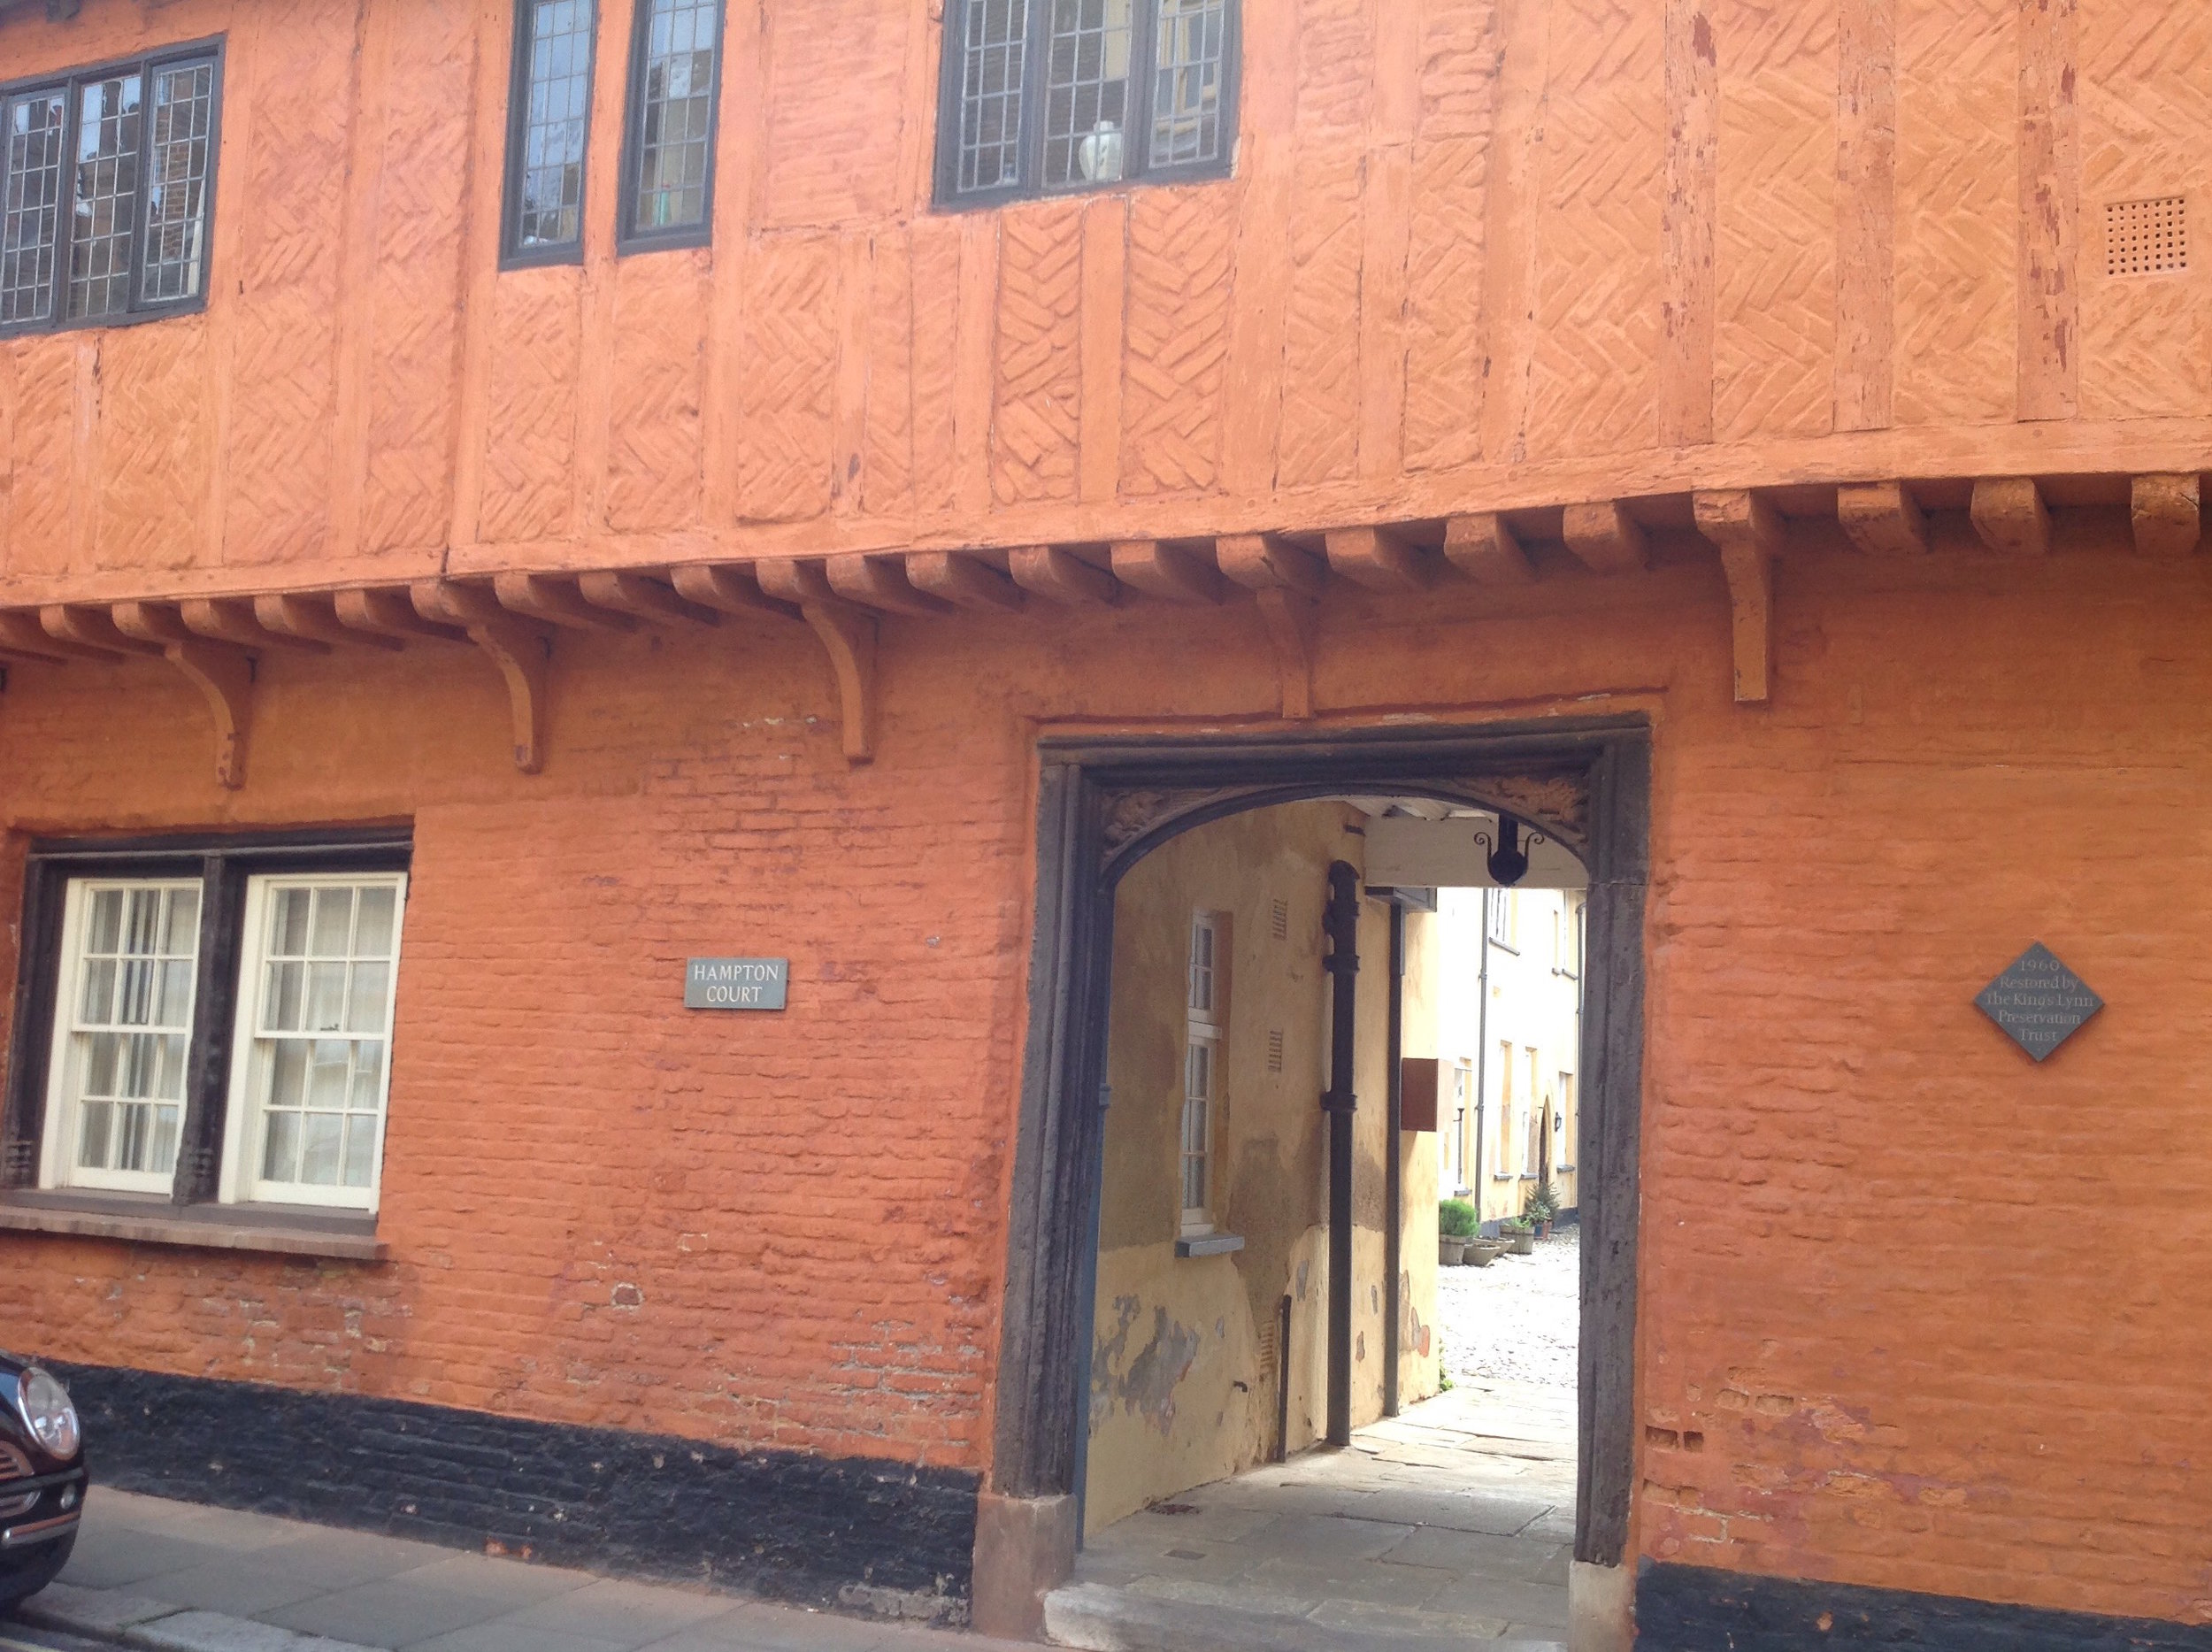 Hampton Court, lovely houses arranged around an internal courtyard in the Old Town.